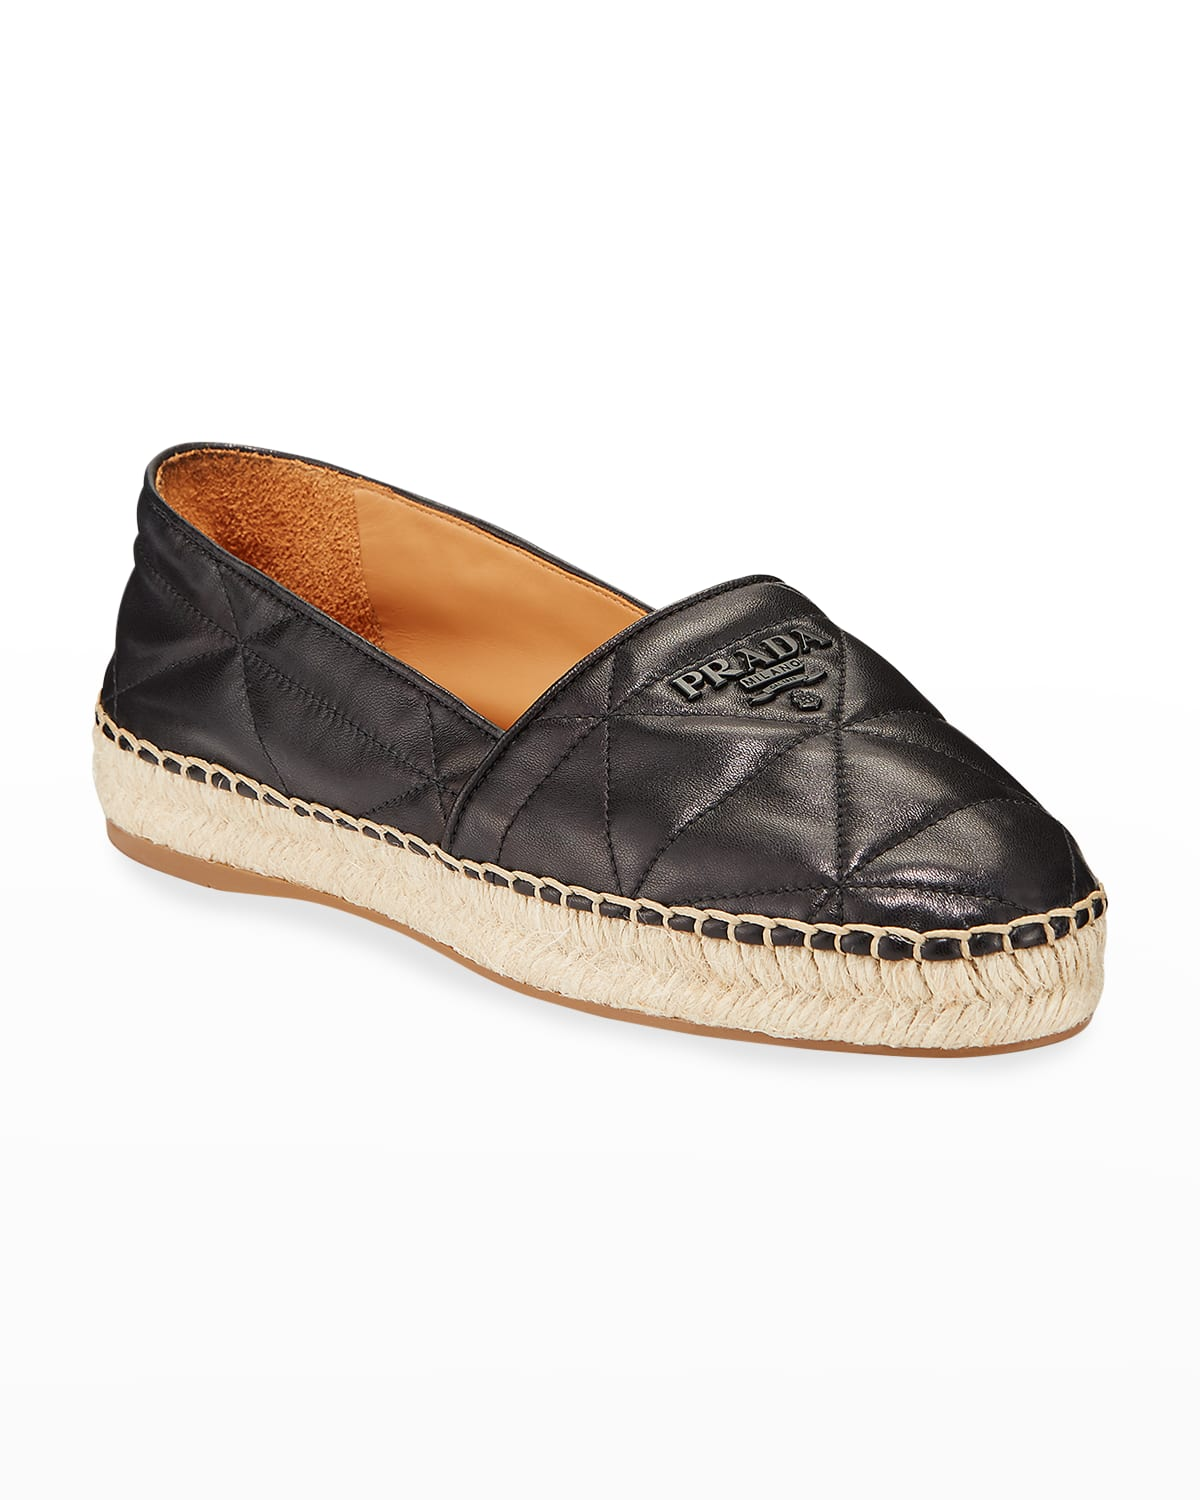 Flat Quilted Leather Espadrilles